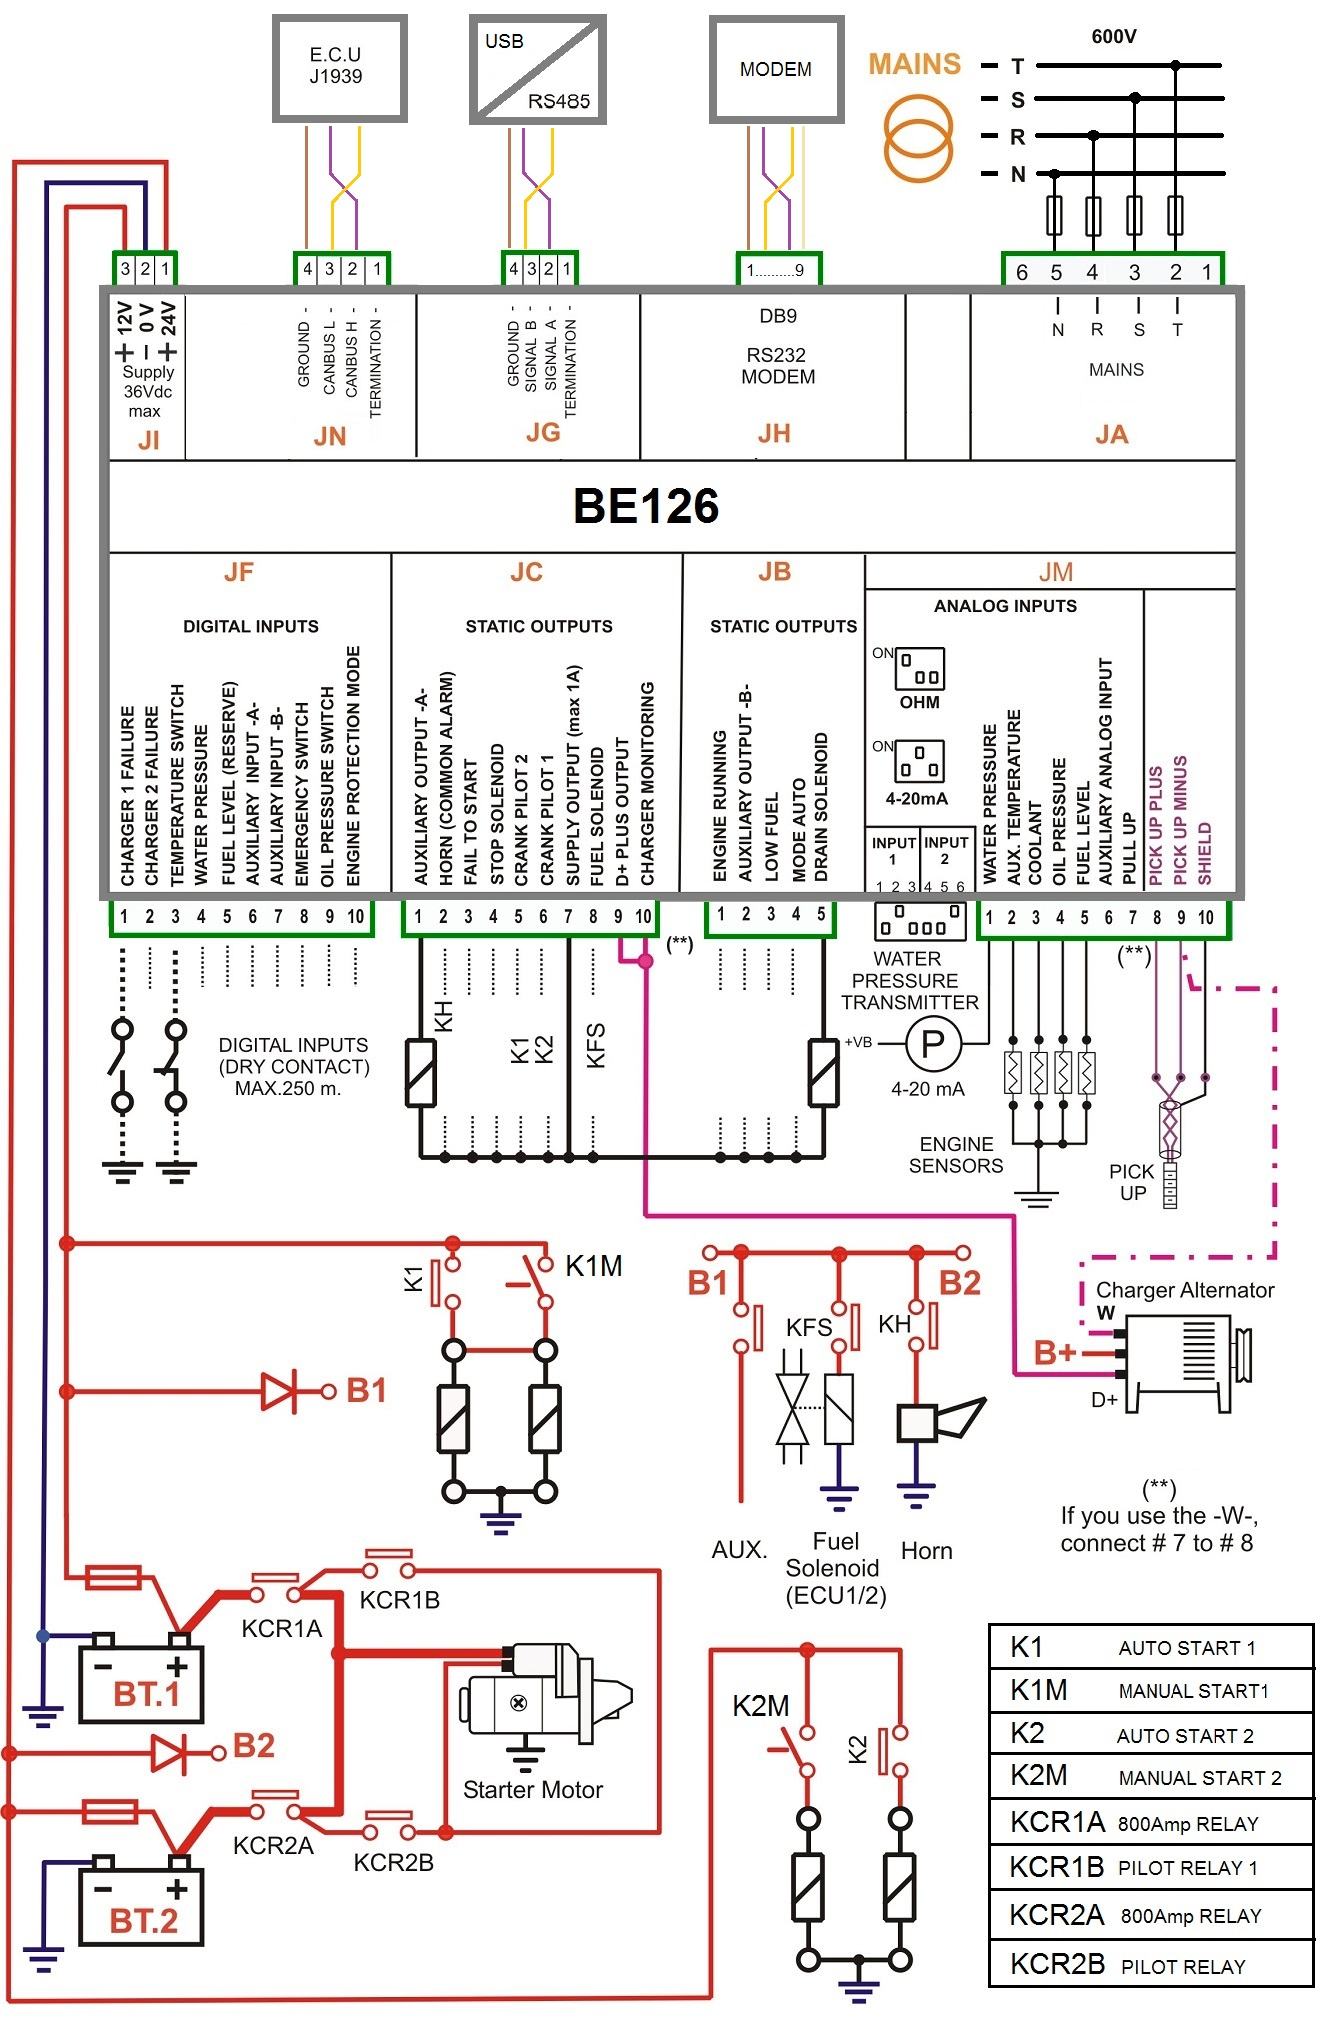 NFPA20 fire pump controller wiring diagram control wiring diagrams water pump control box wiring diagram Outlet Wiring Diagram at n-0.co